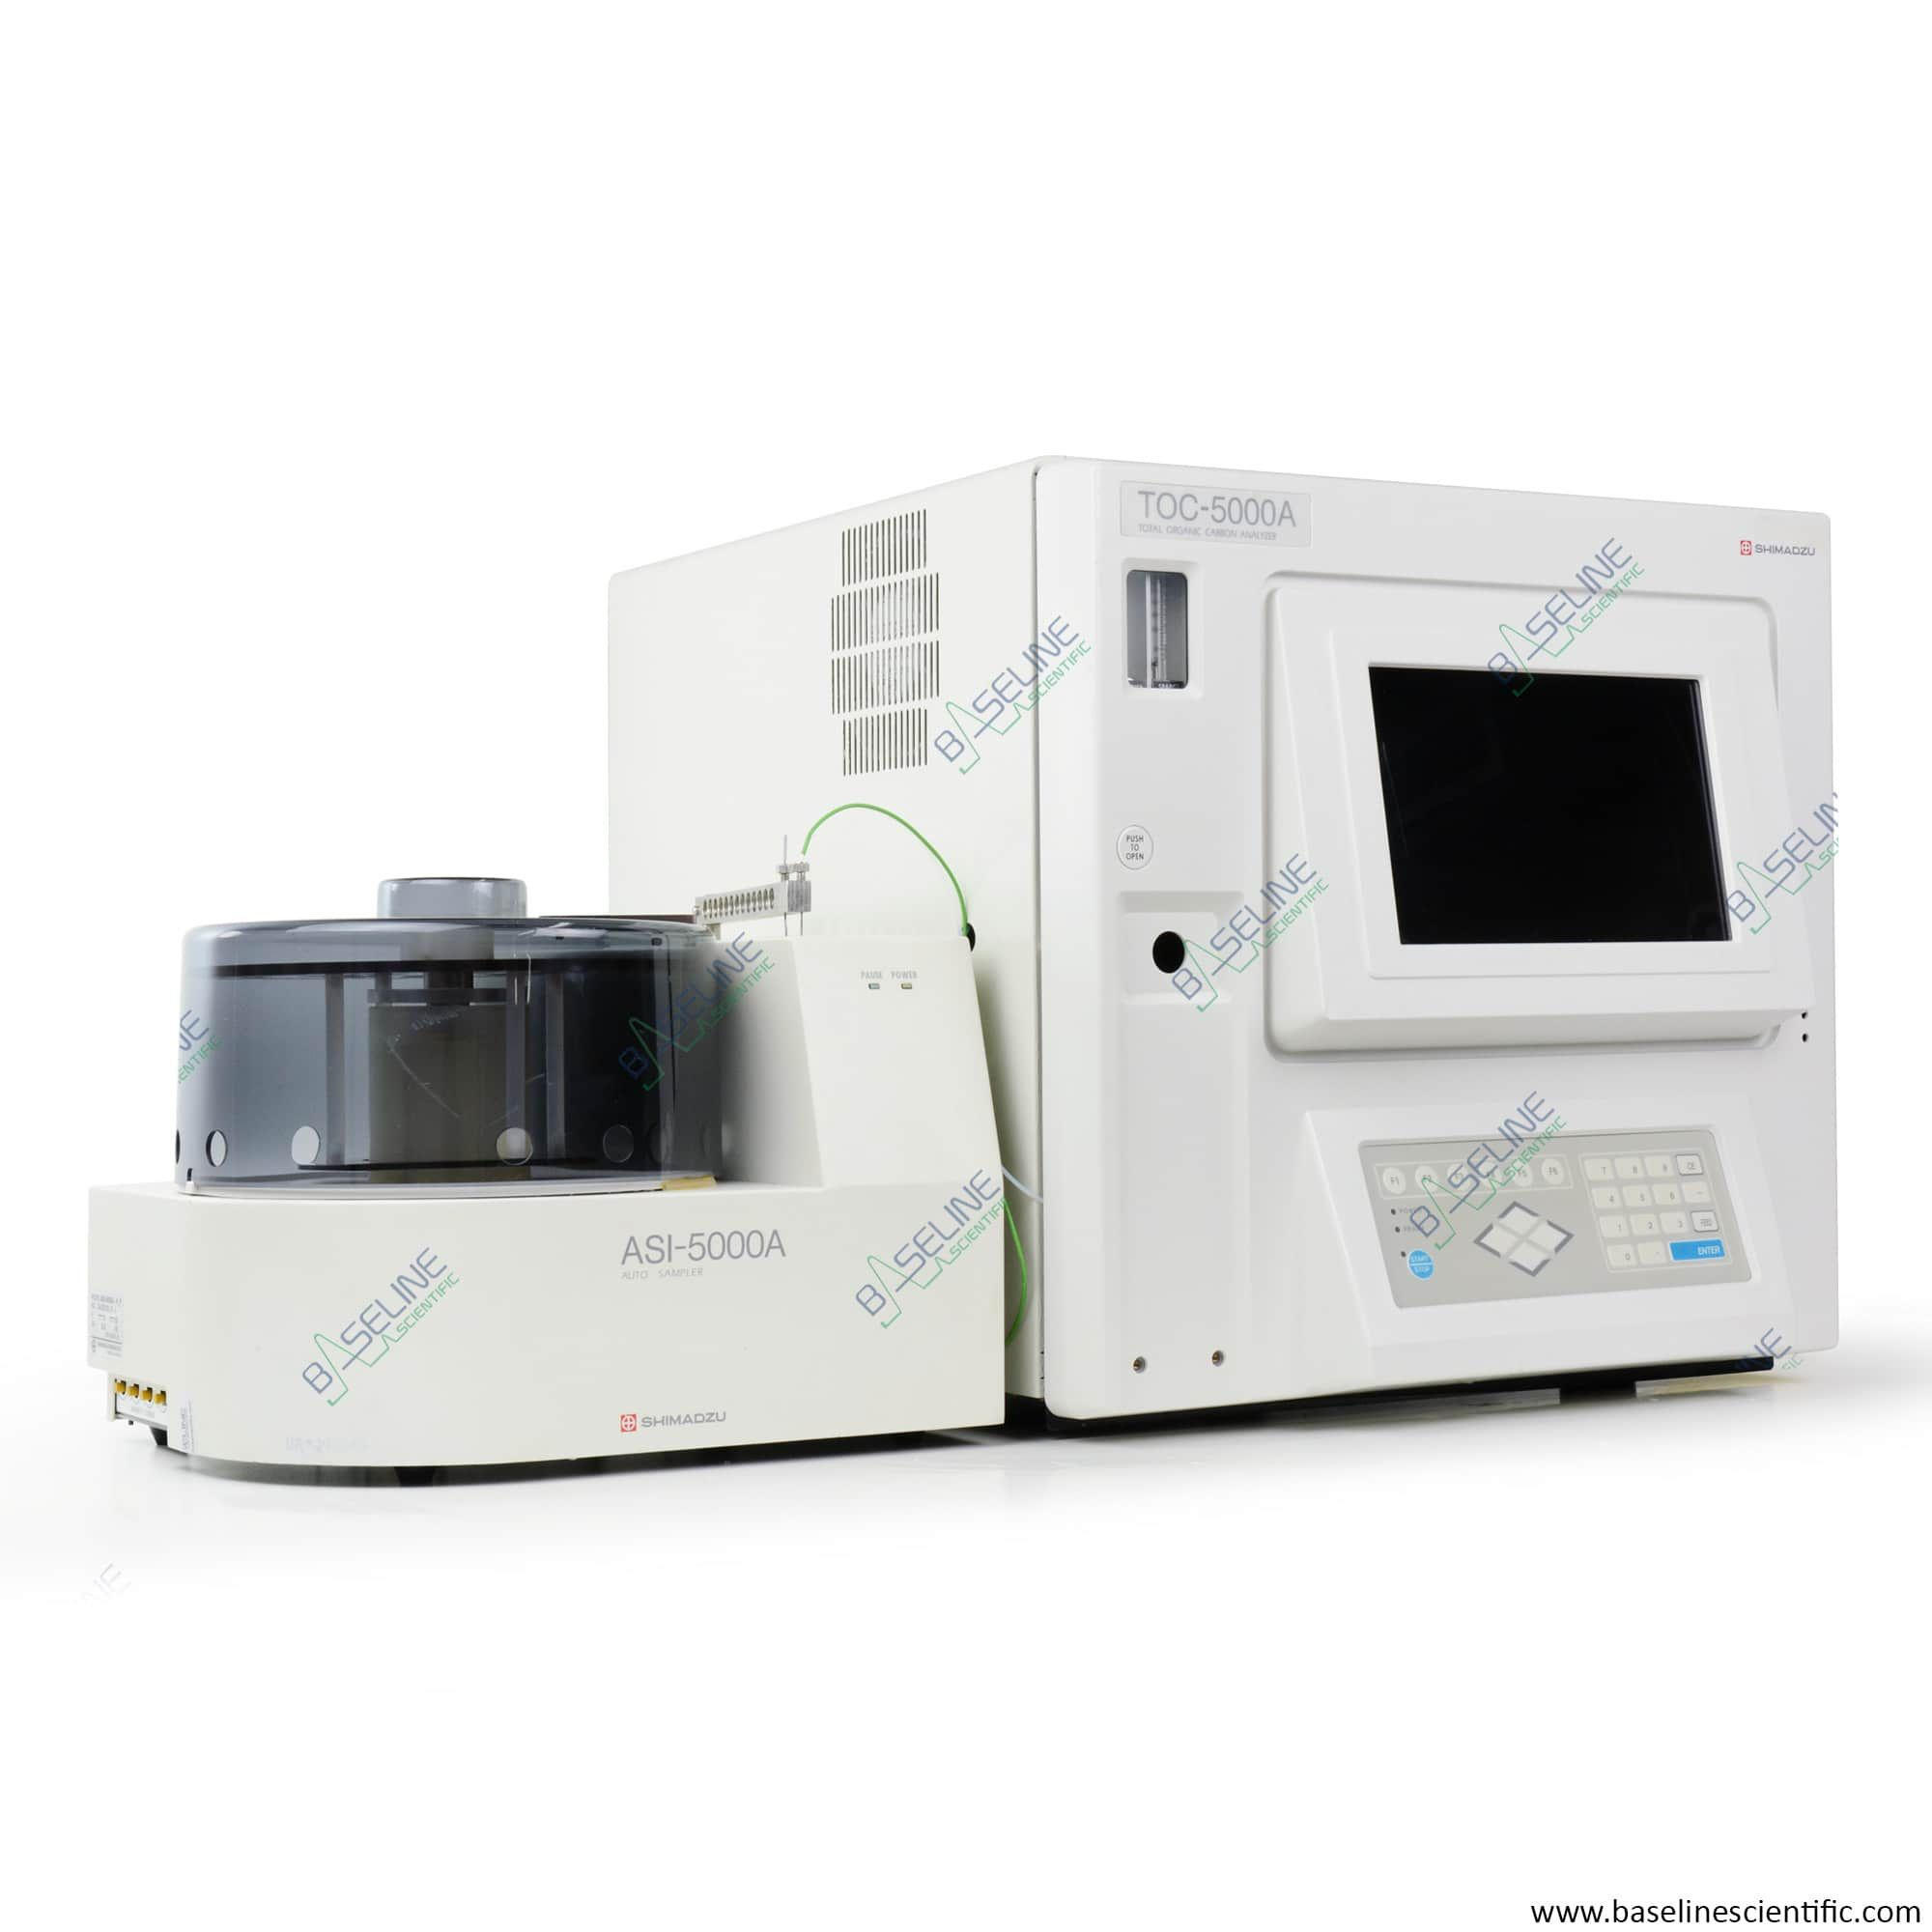 Refurbished Shimadzu TOC-5000A with ASI-5000A Autosampler and ONE YEAR WARRANTY